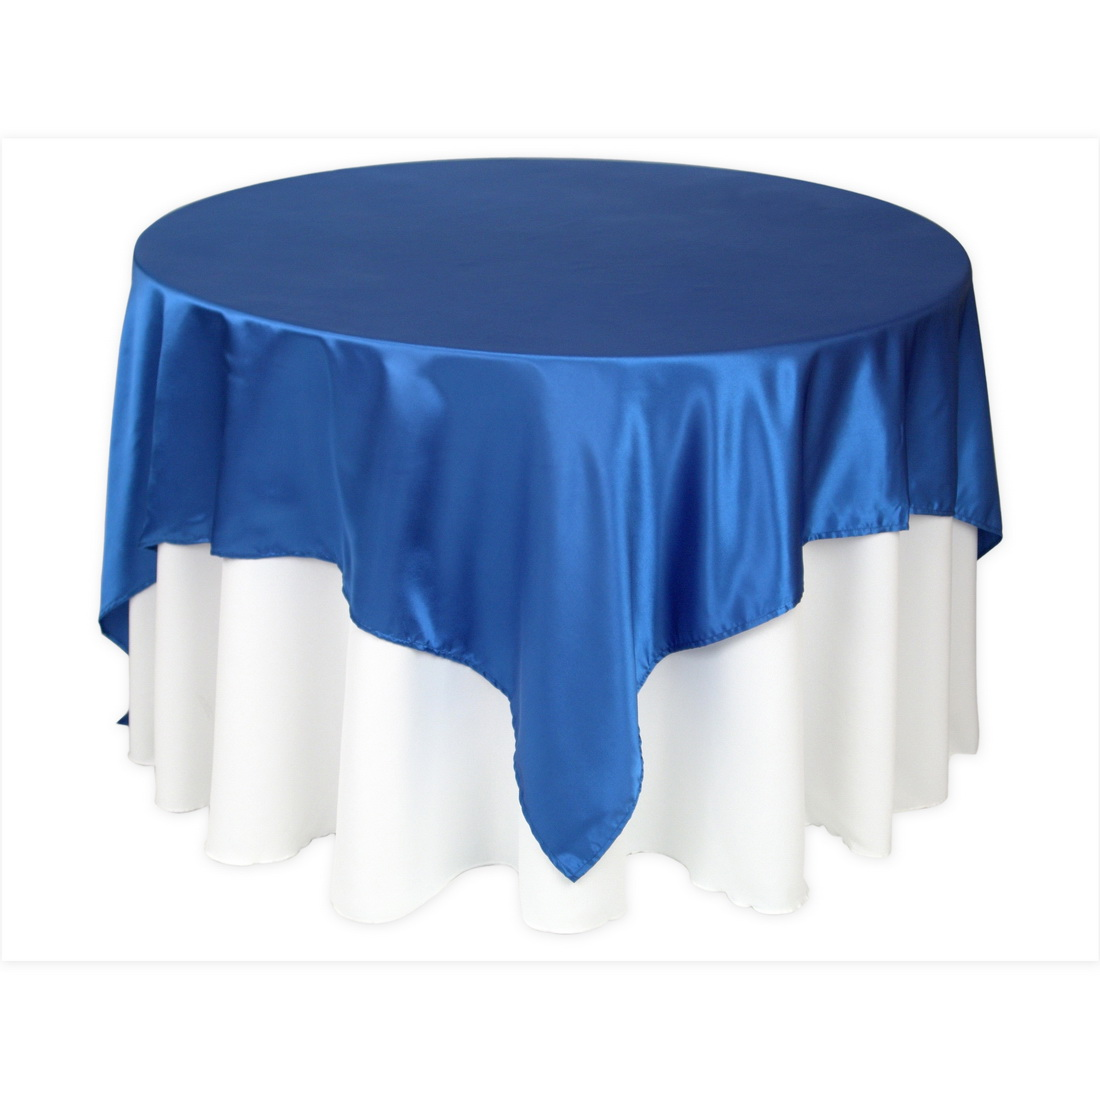 chair covers wholesale china fishing for sale uk banquet table cloth satin cover overlay